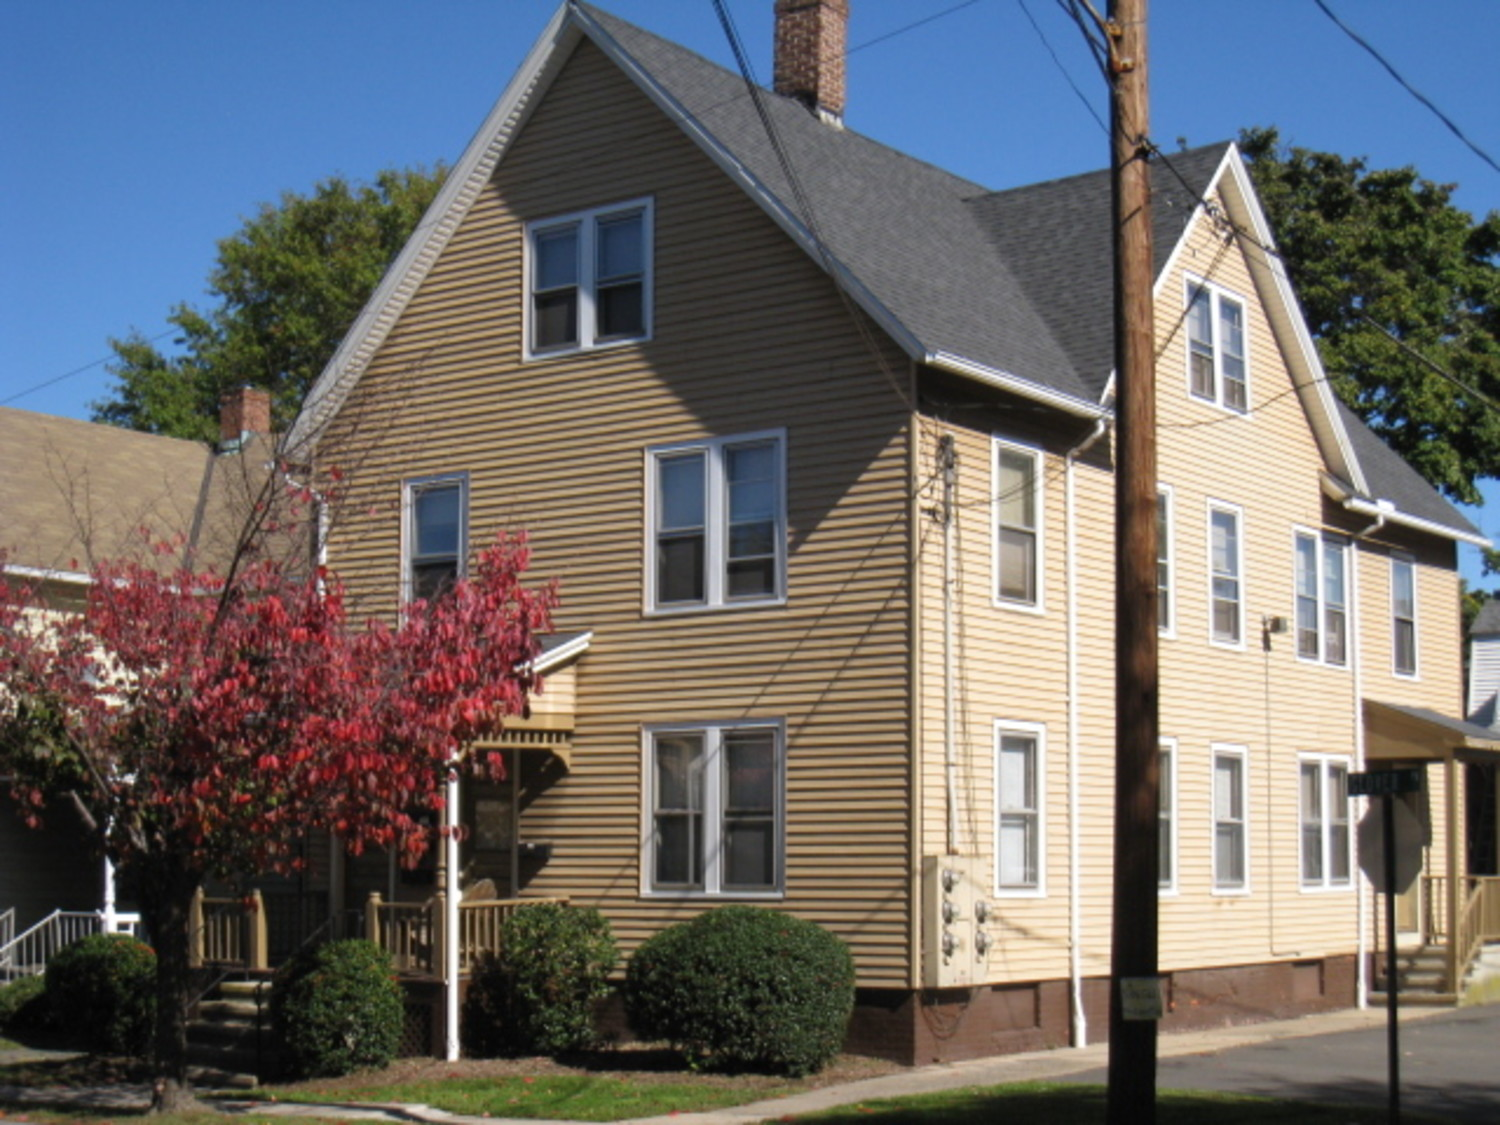 144 Pearl Street  06457 Apartment Rentals in Middletown, CT